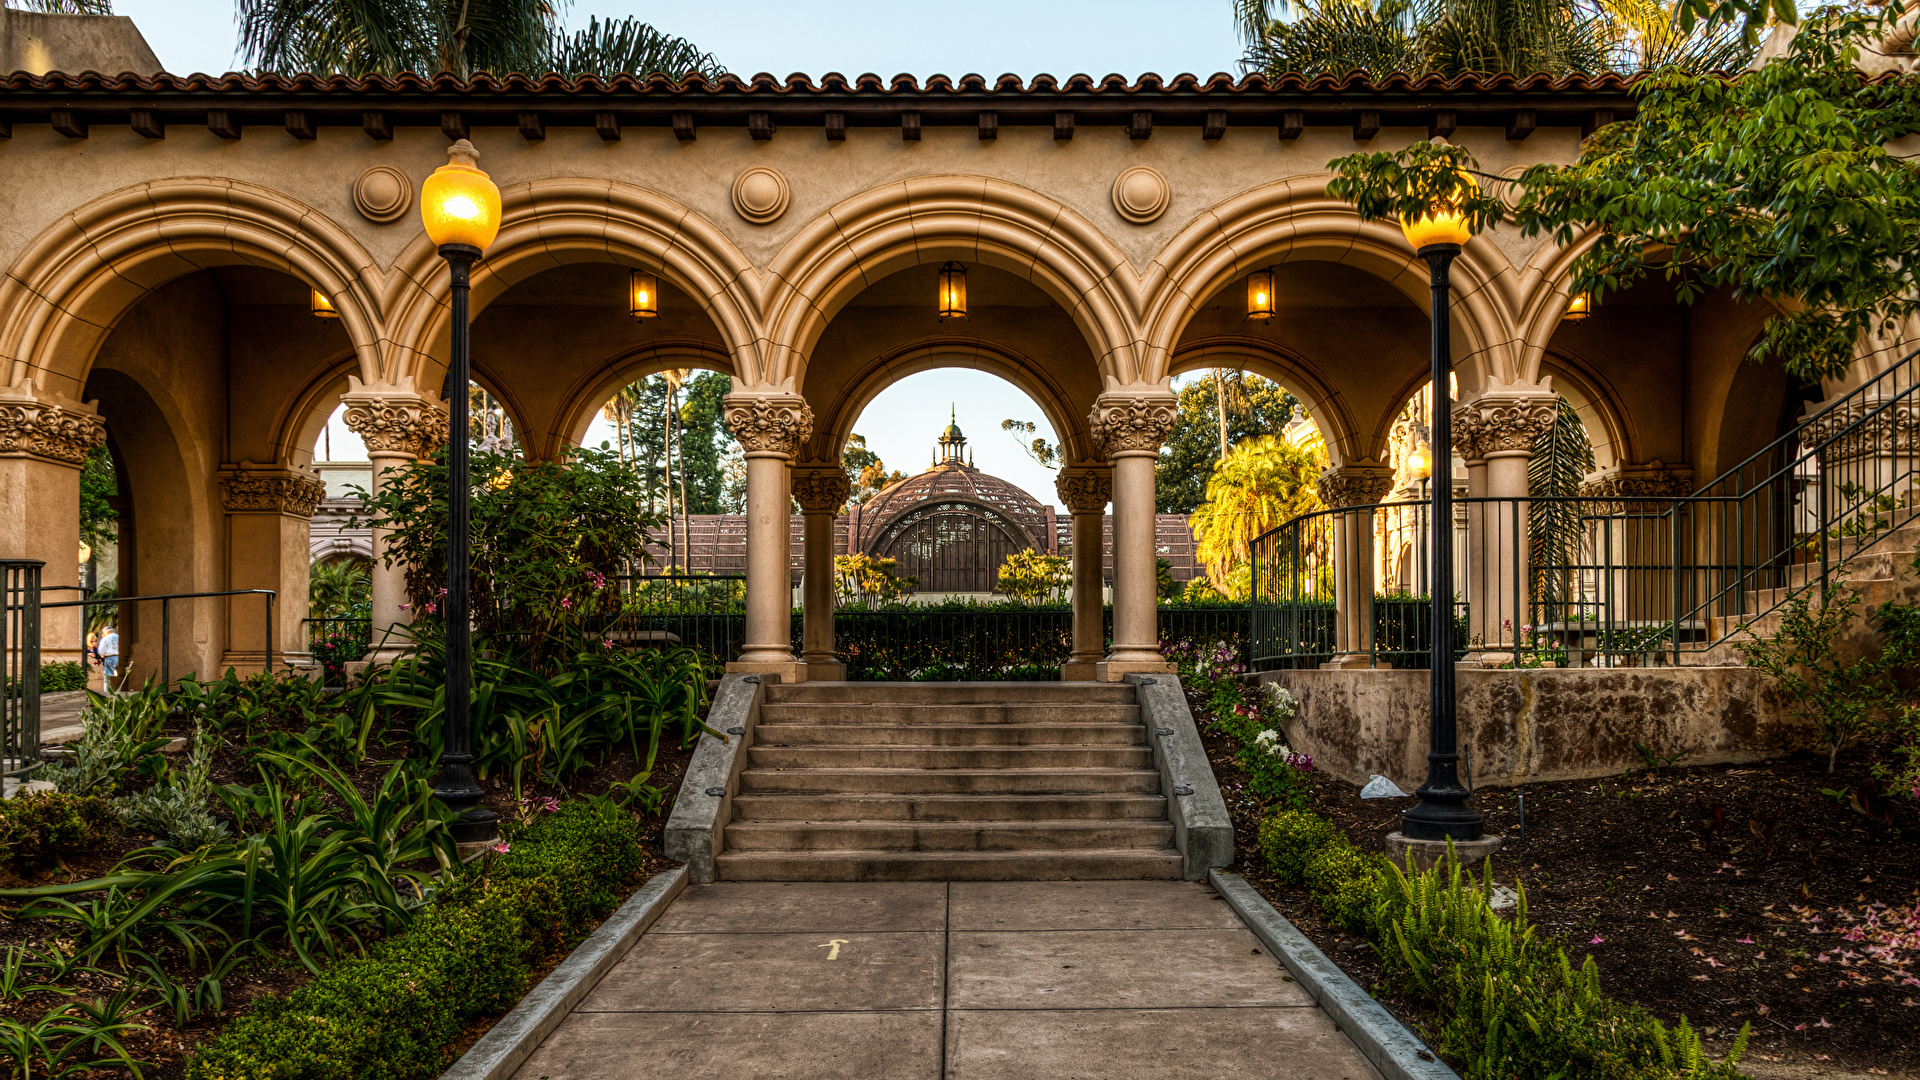 Wallpaper San Diego California USA Arch Balboa Park Nature staircase park Street lights 1920x1080 Stairs stairway Parks